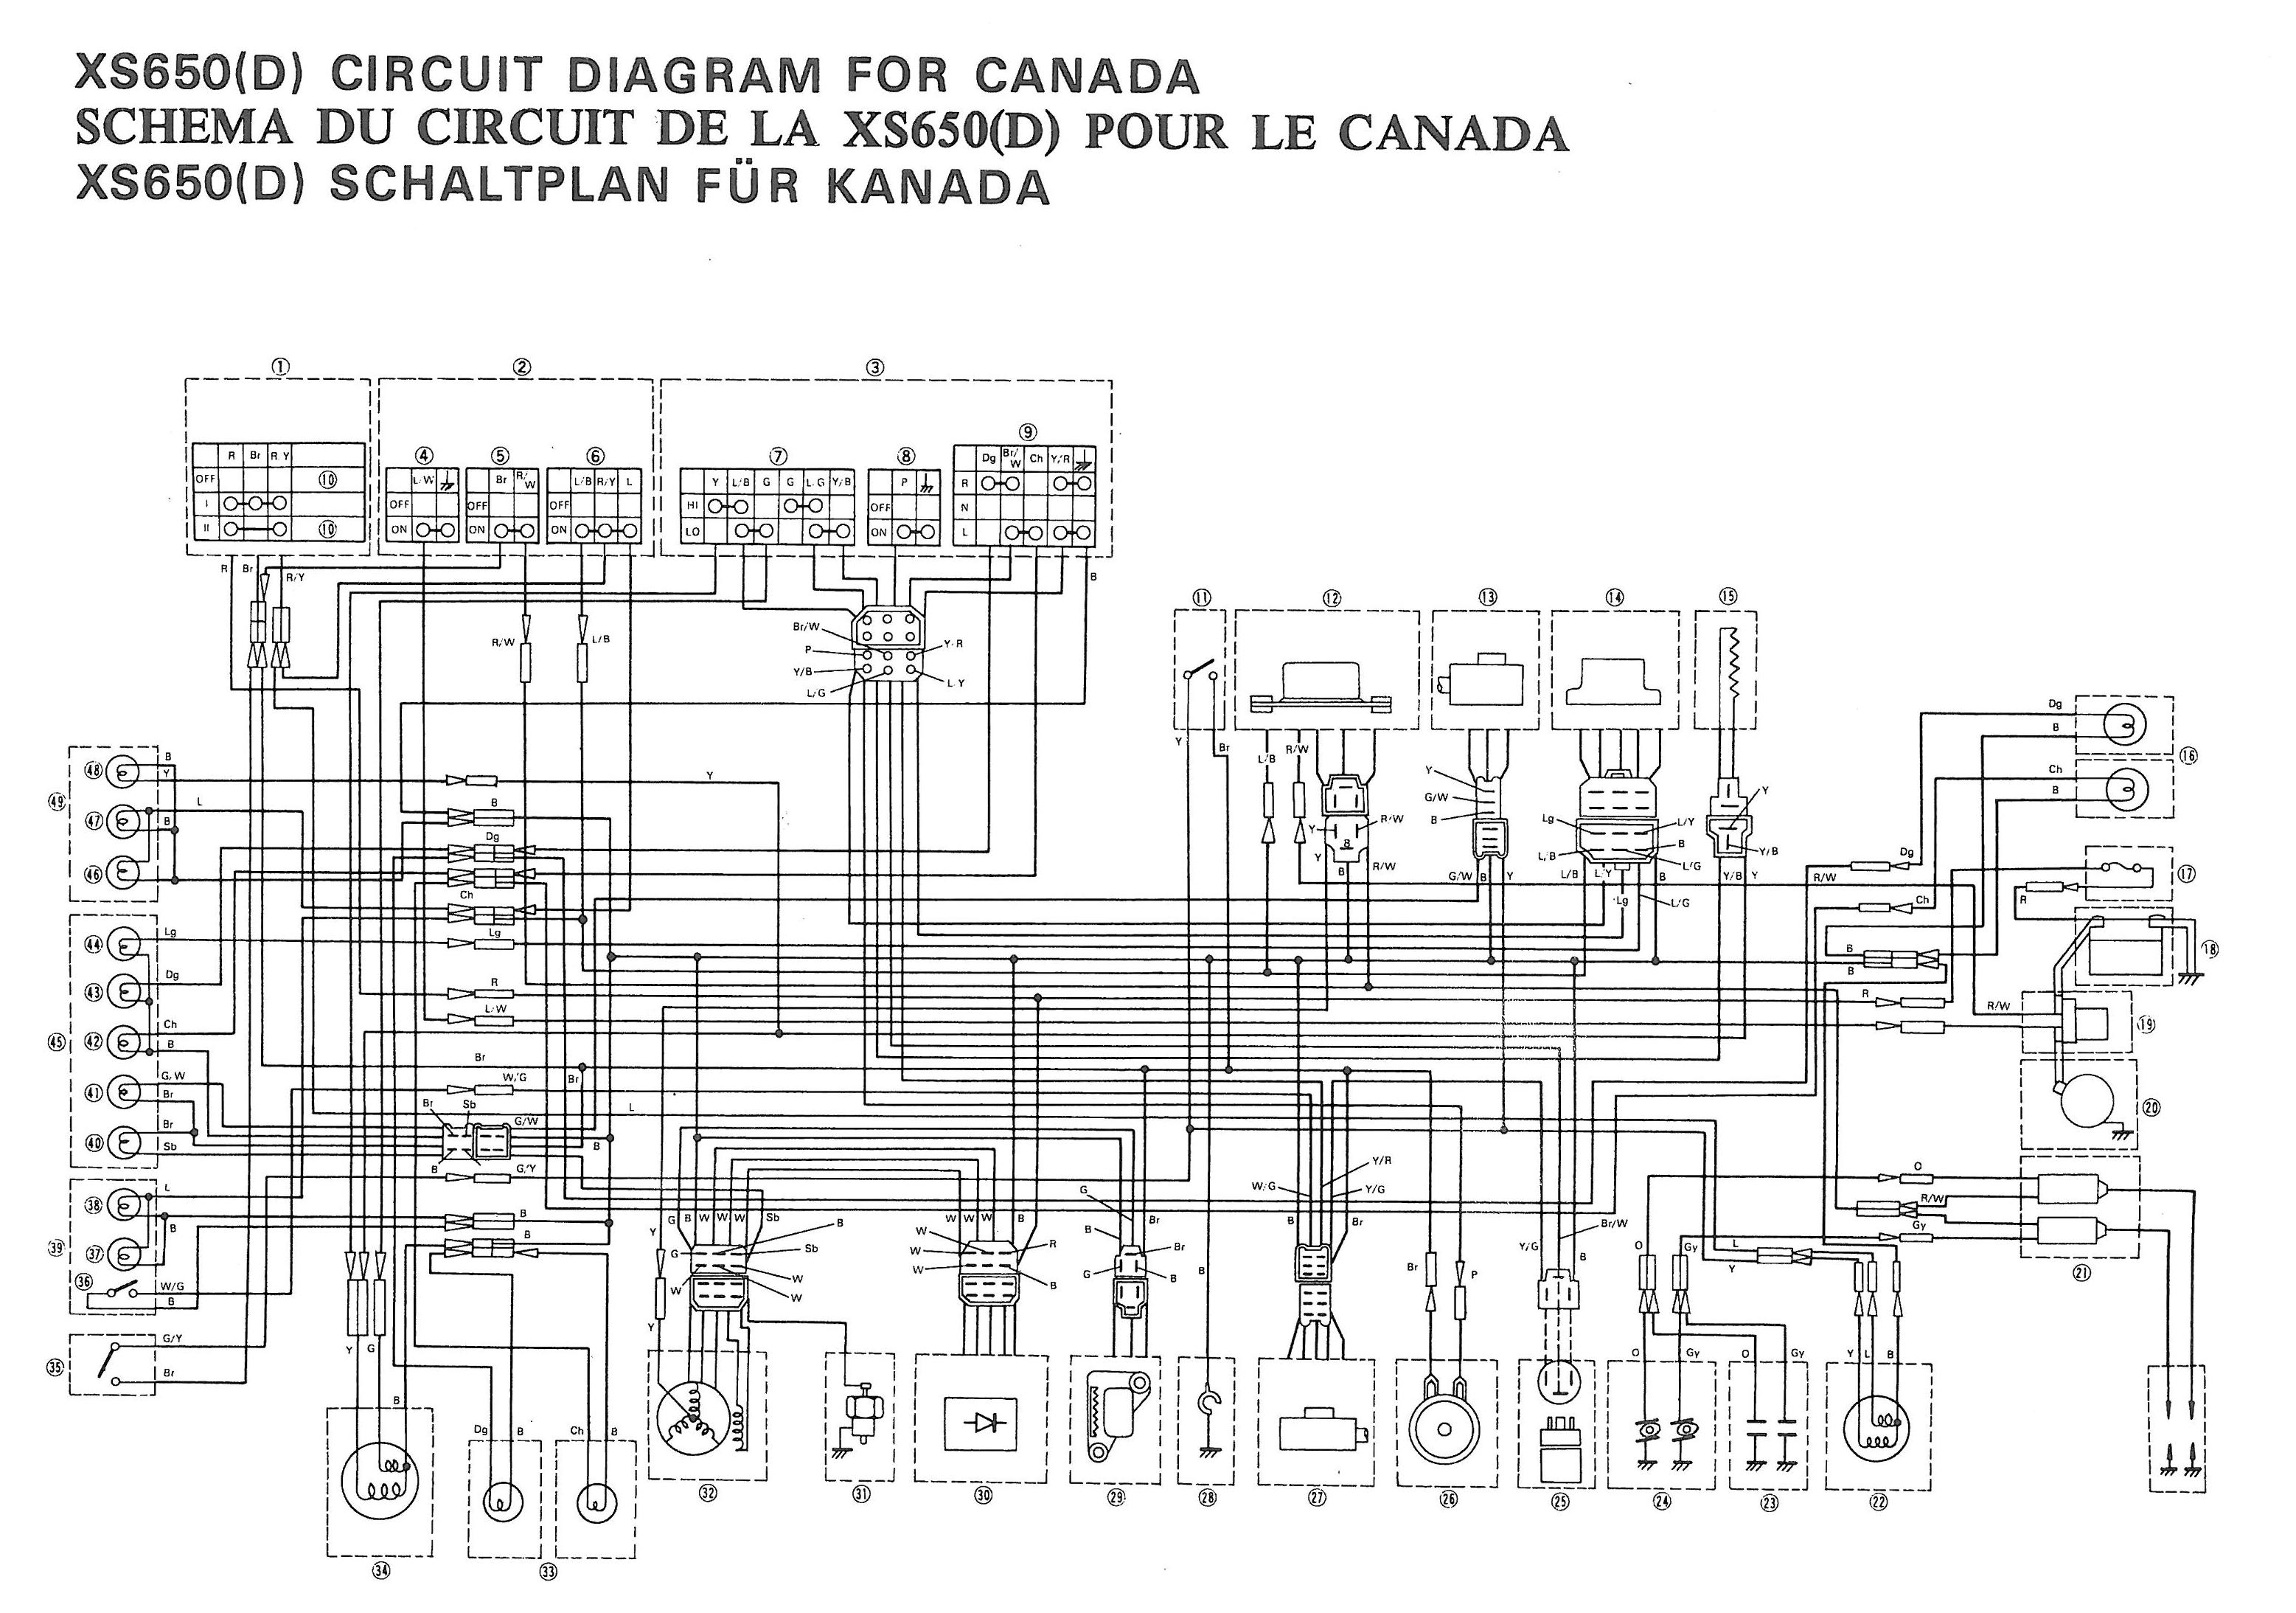 xs650 wiring diagram for 1979 ignition wiring diagram for 1979 ford f100 1979 yamaha xs750 special wiring diagram | hobbiesxstyle